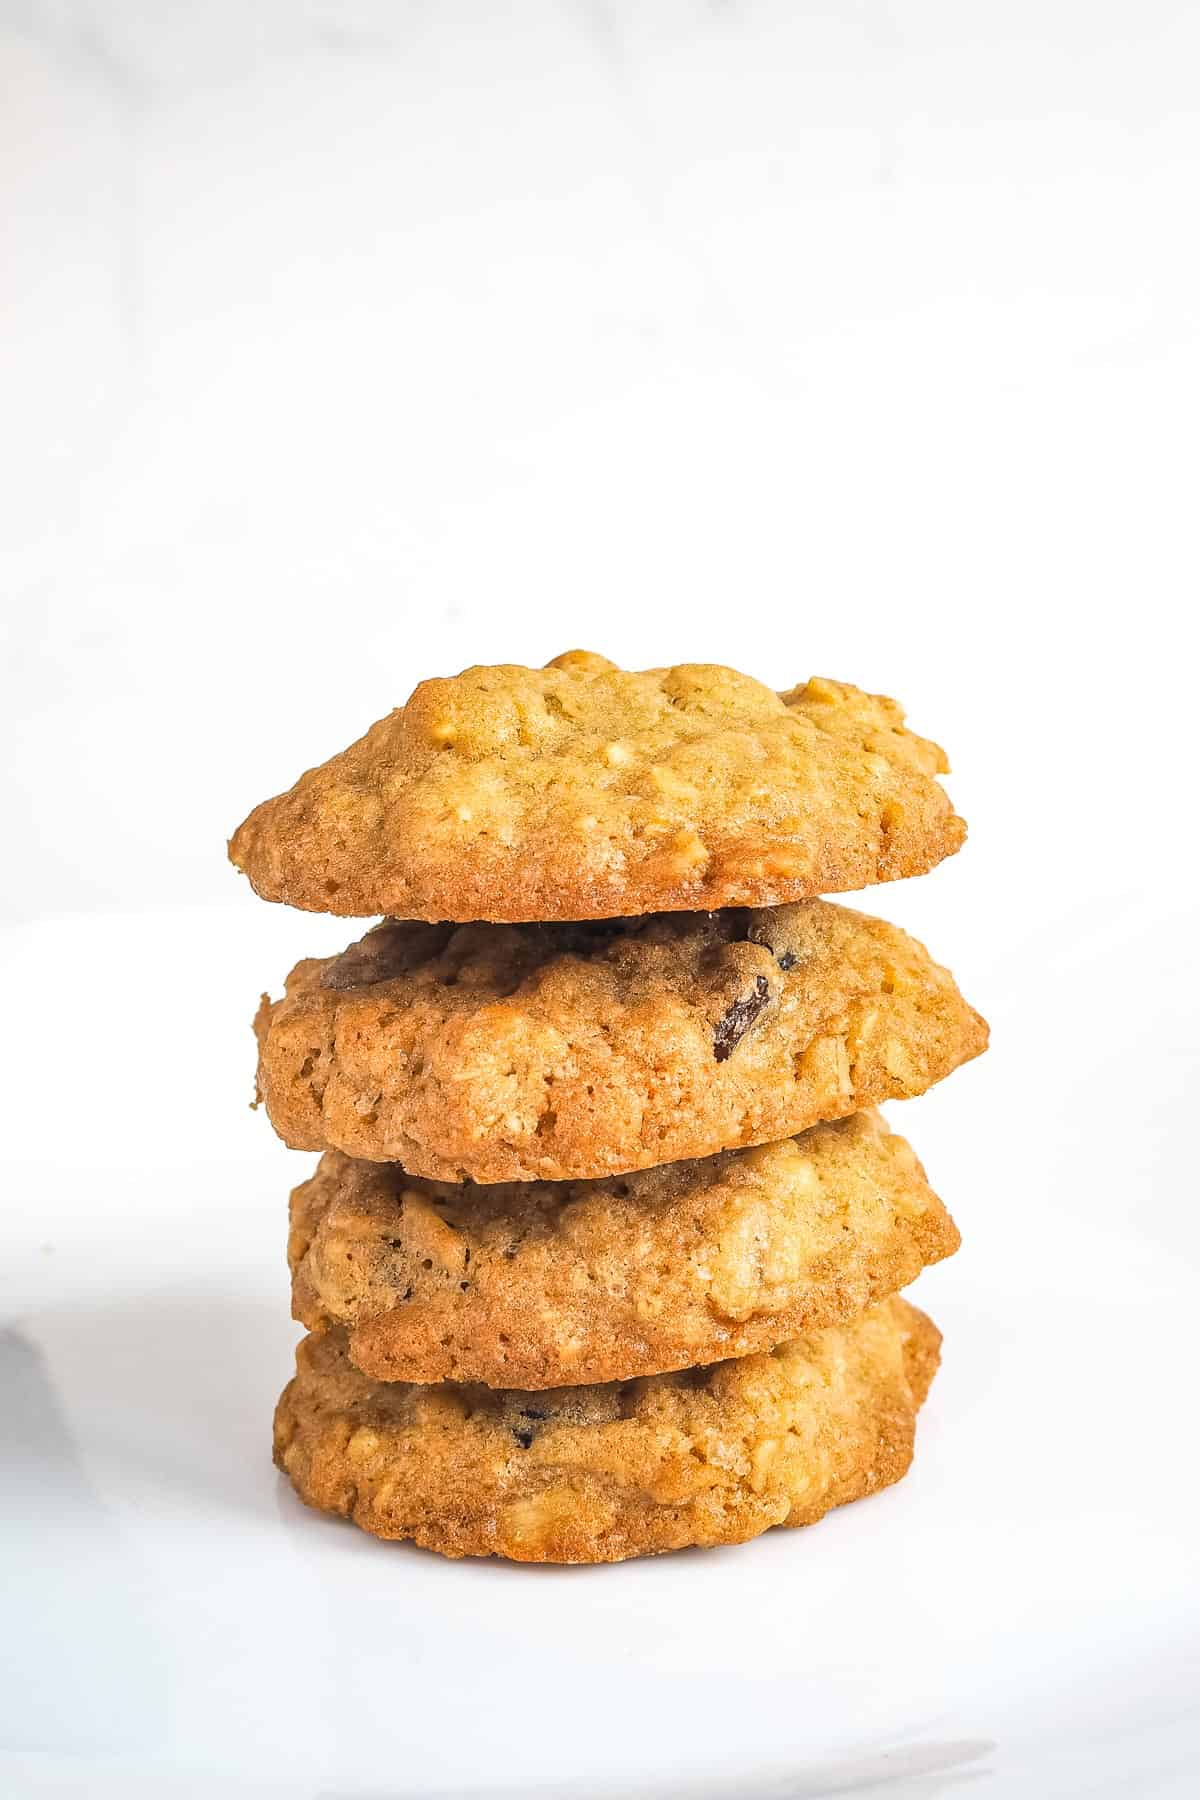 A stack of 4 old fashioned oatmeal raisin cookies